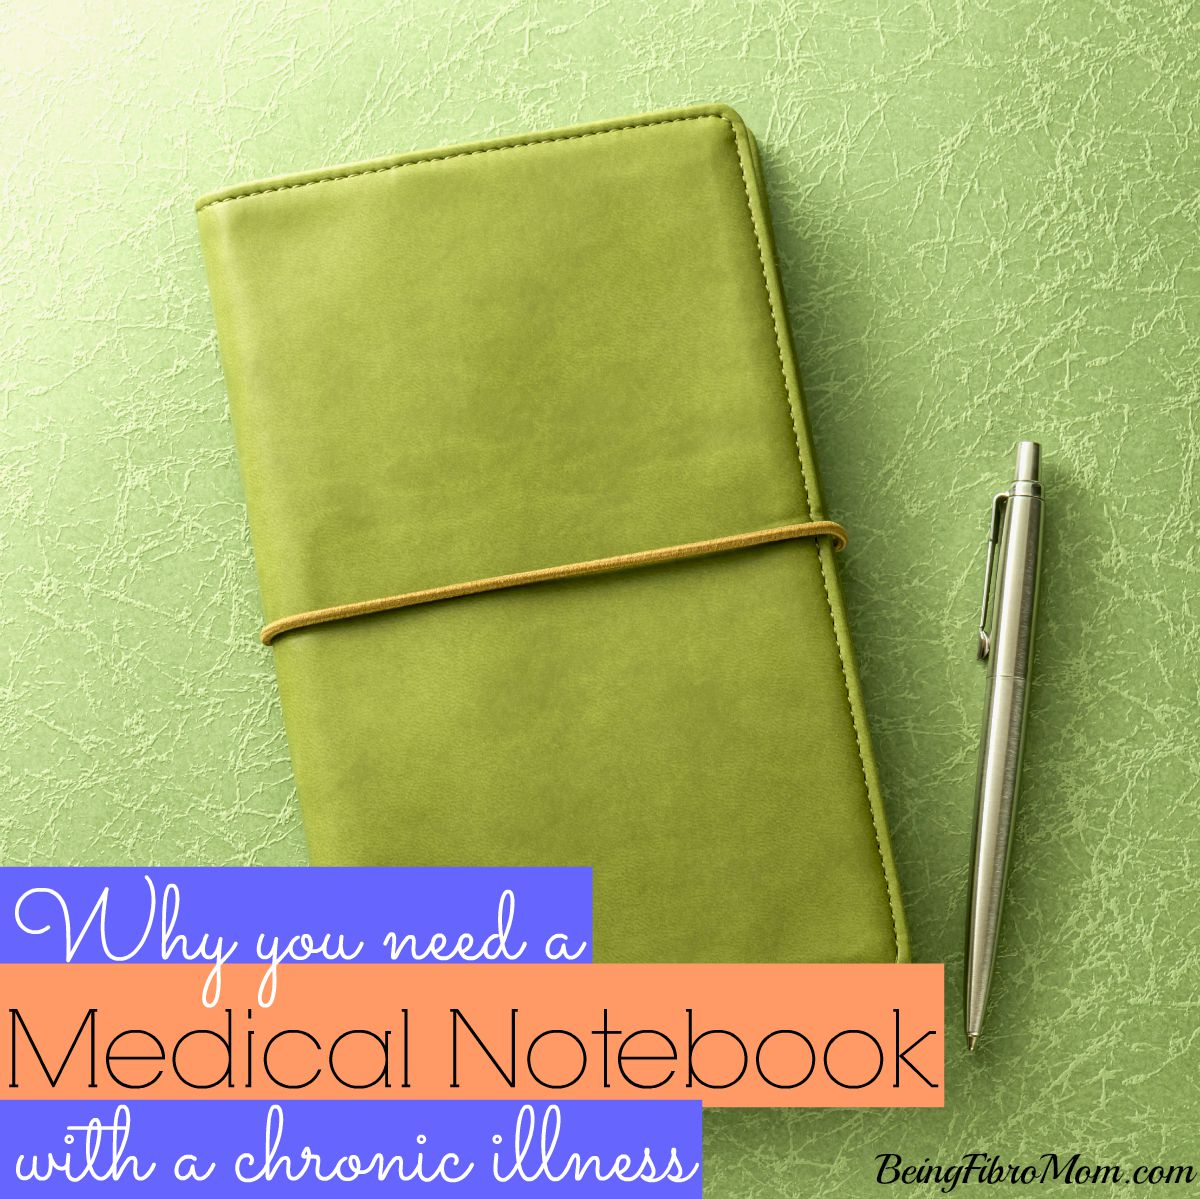 why you need a medical notebook with a chronic illness #fibromyalgia #chronicillness